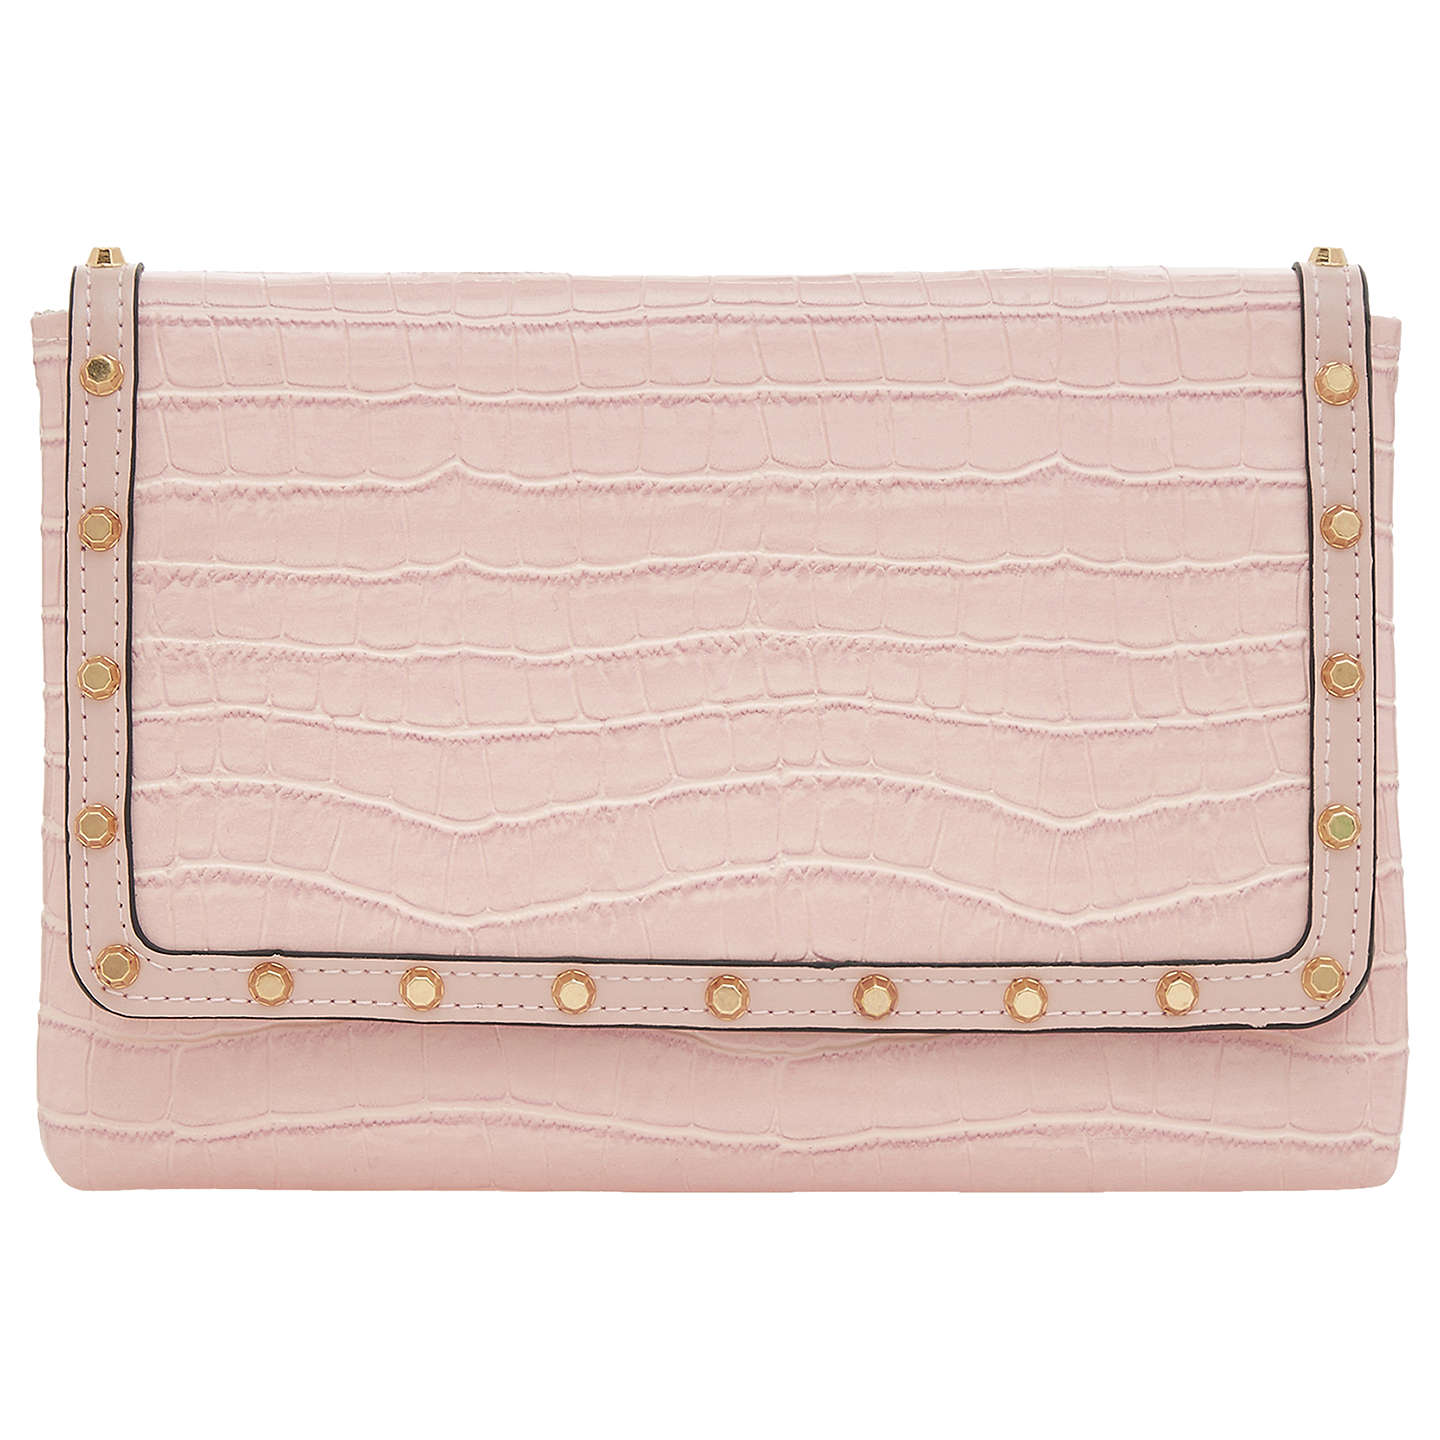 Dune Borriss Stud Clutch Bag, Blush by Dune